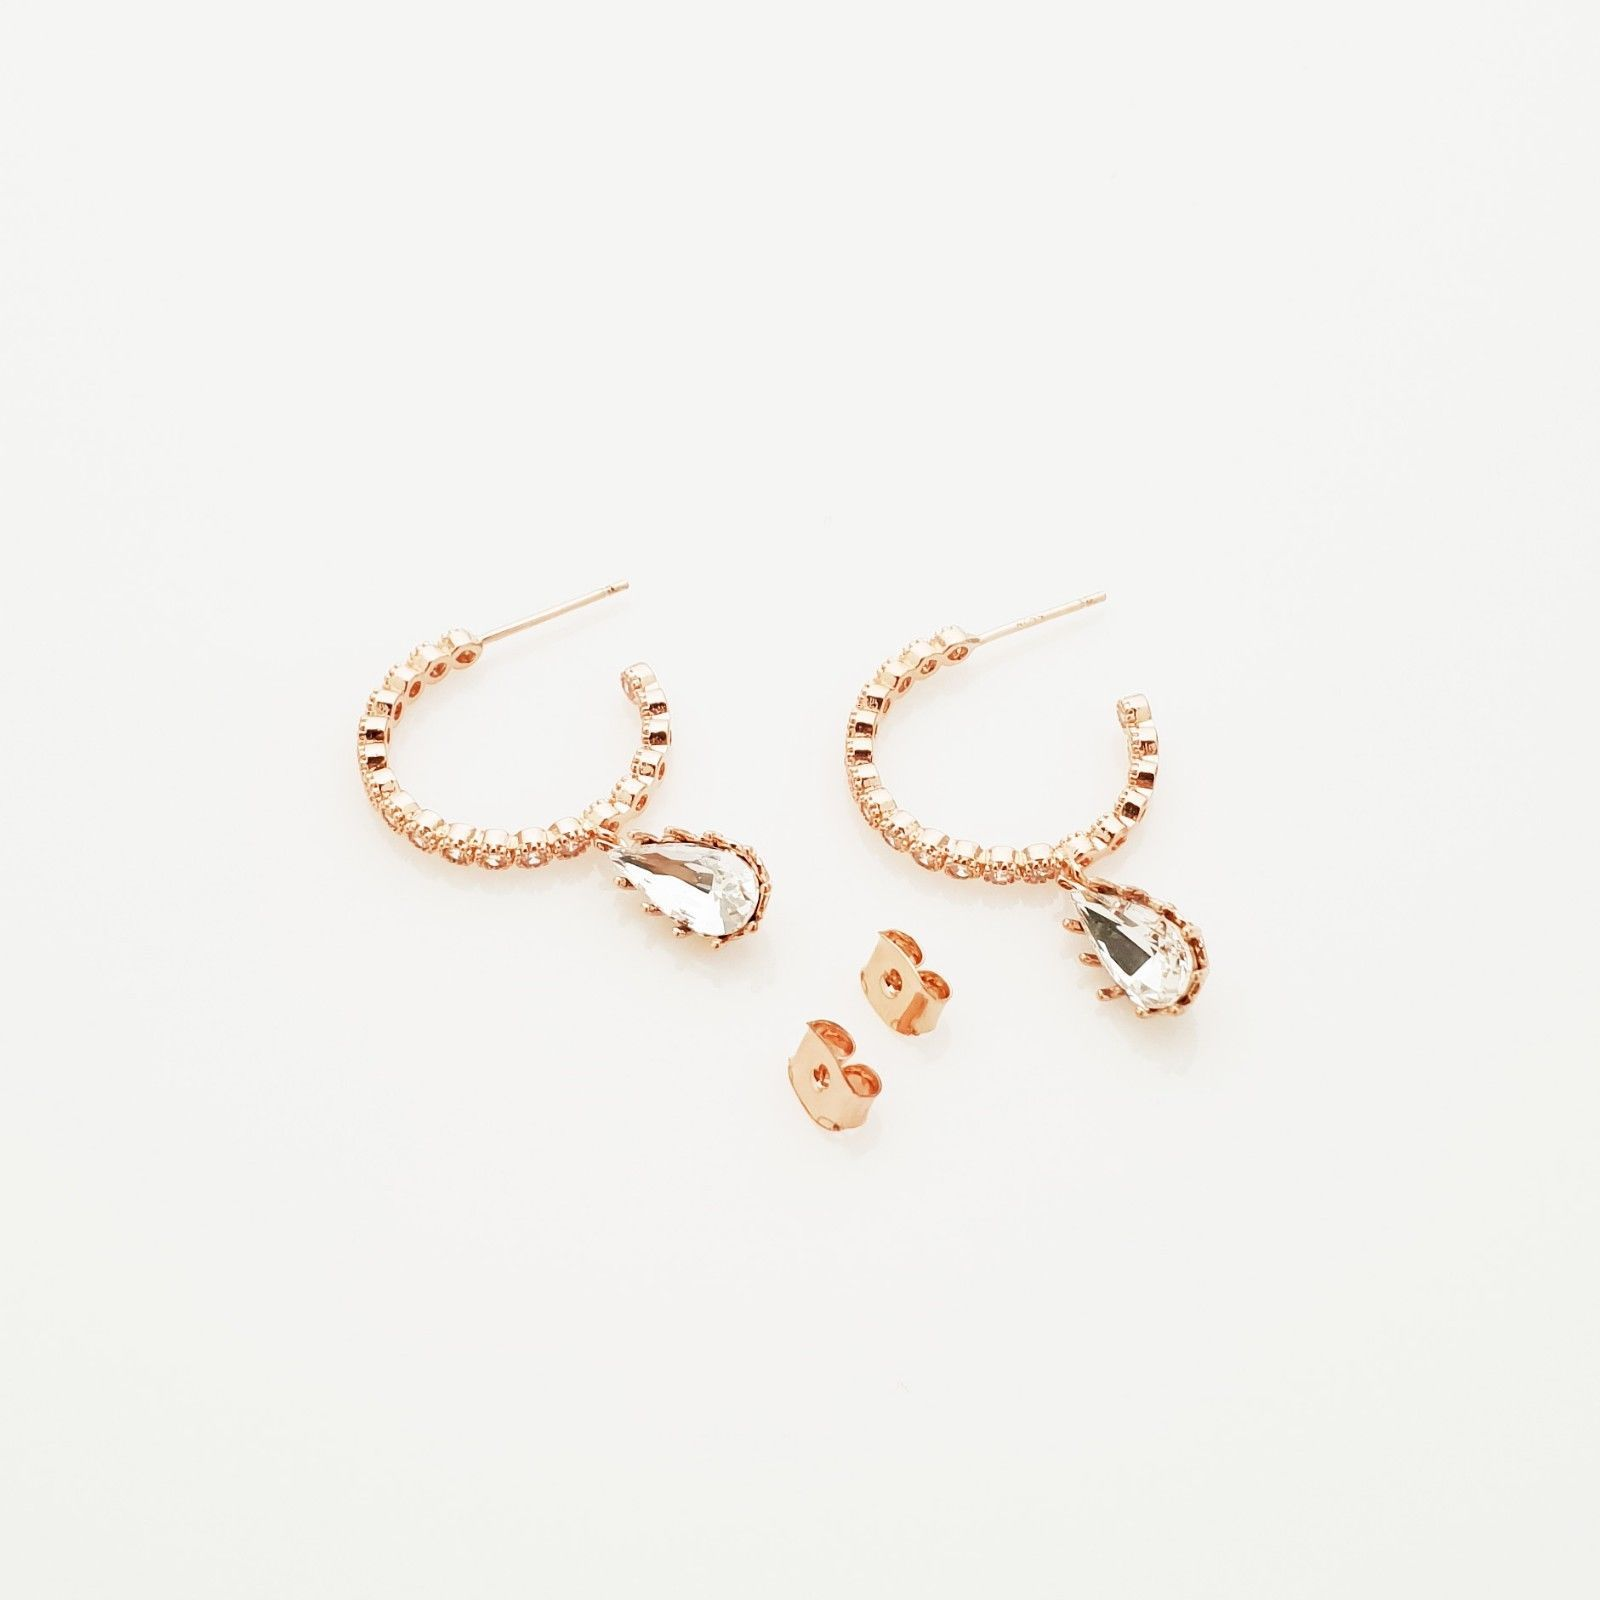 Hoop Water Drop Made With Swarovski Crystal Dangle Earrings Rose Gold Tone Pink image 6